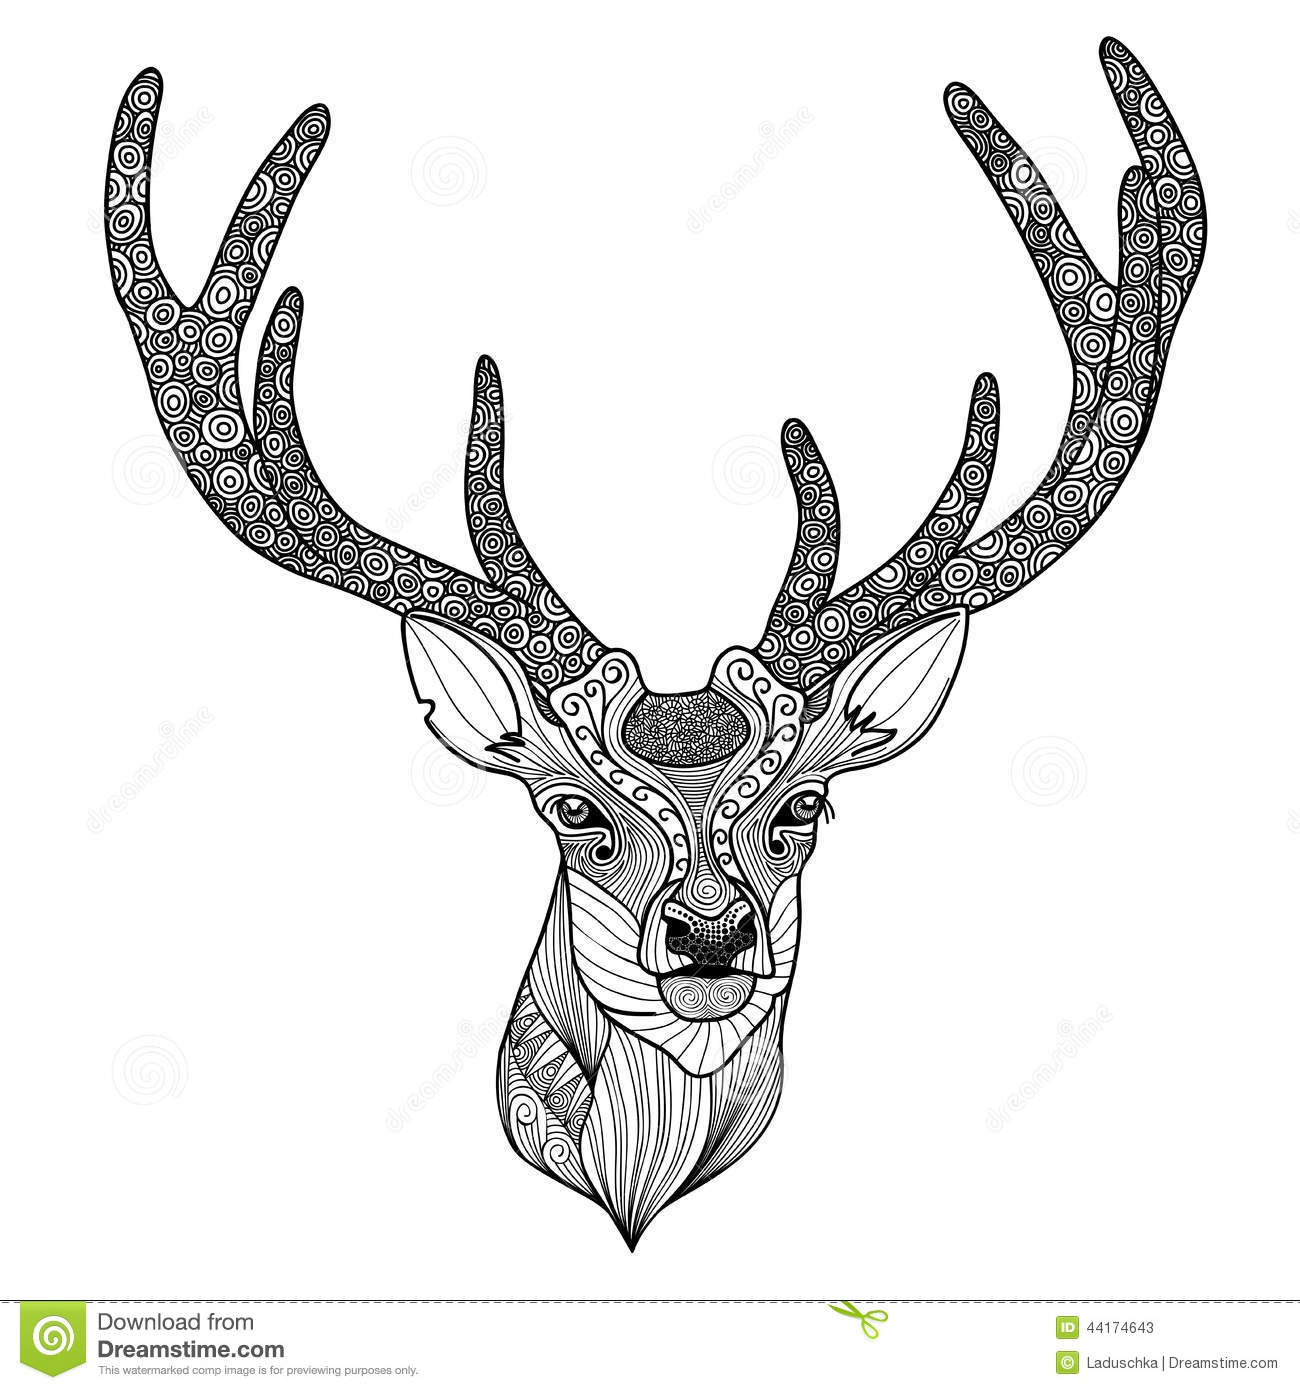 T te model e de cerfs communs illustration de vecteur - Dessin de tete de cerf ...